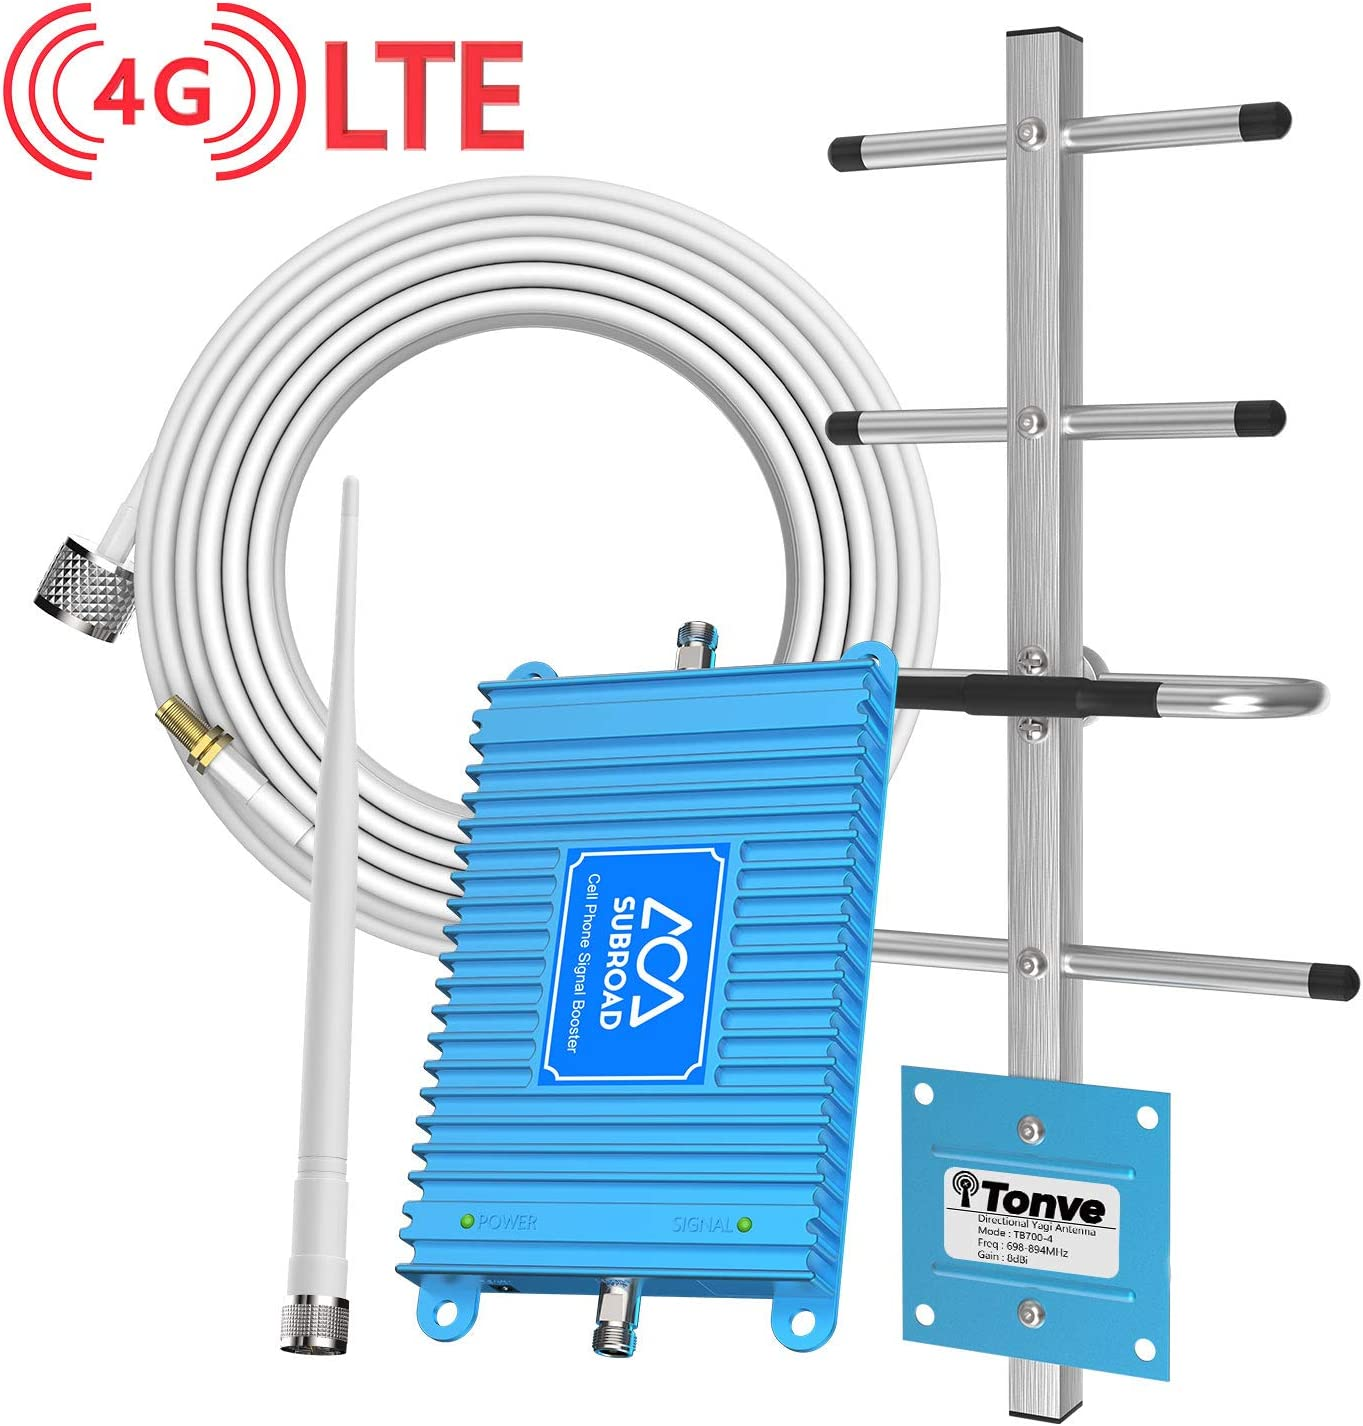 Verizon Cell Phone Signal Booster 4G LTE Subroad Cell Signal Booster Verizon Cell Phone Signal Amplifier//Mobile Phone Signal Booster 700Mhz Band13 Repeater FDD with Whip+Yagi Antenna kit for Home